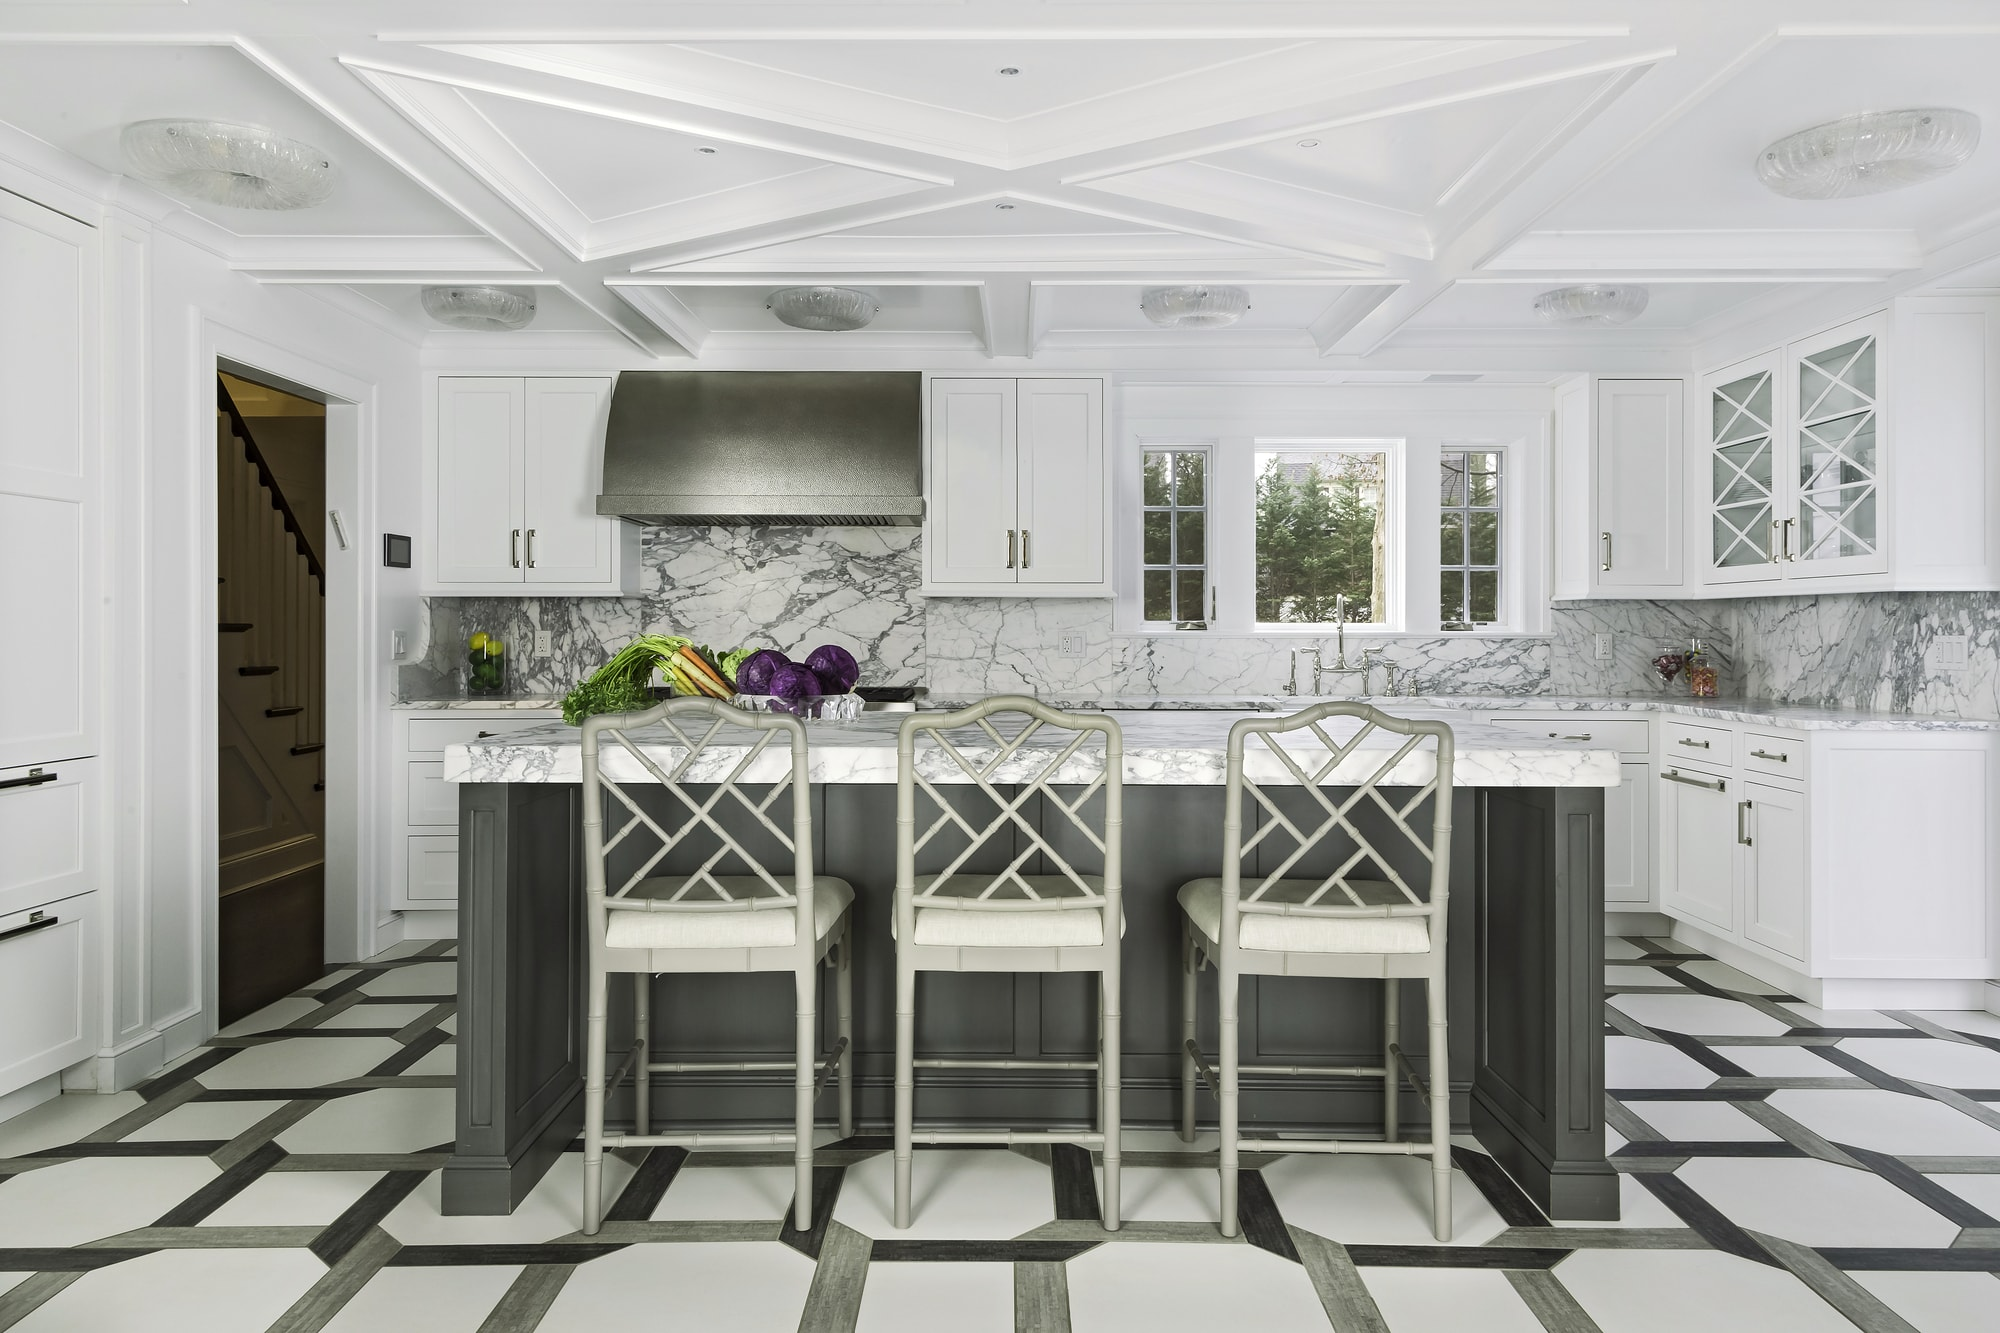 Transitional style kitchen with an elegant modern design